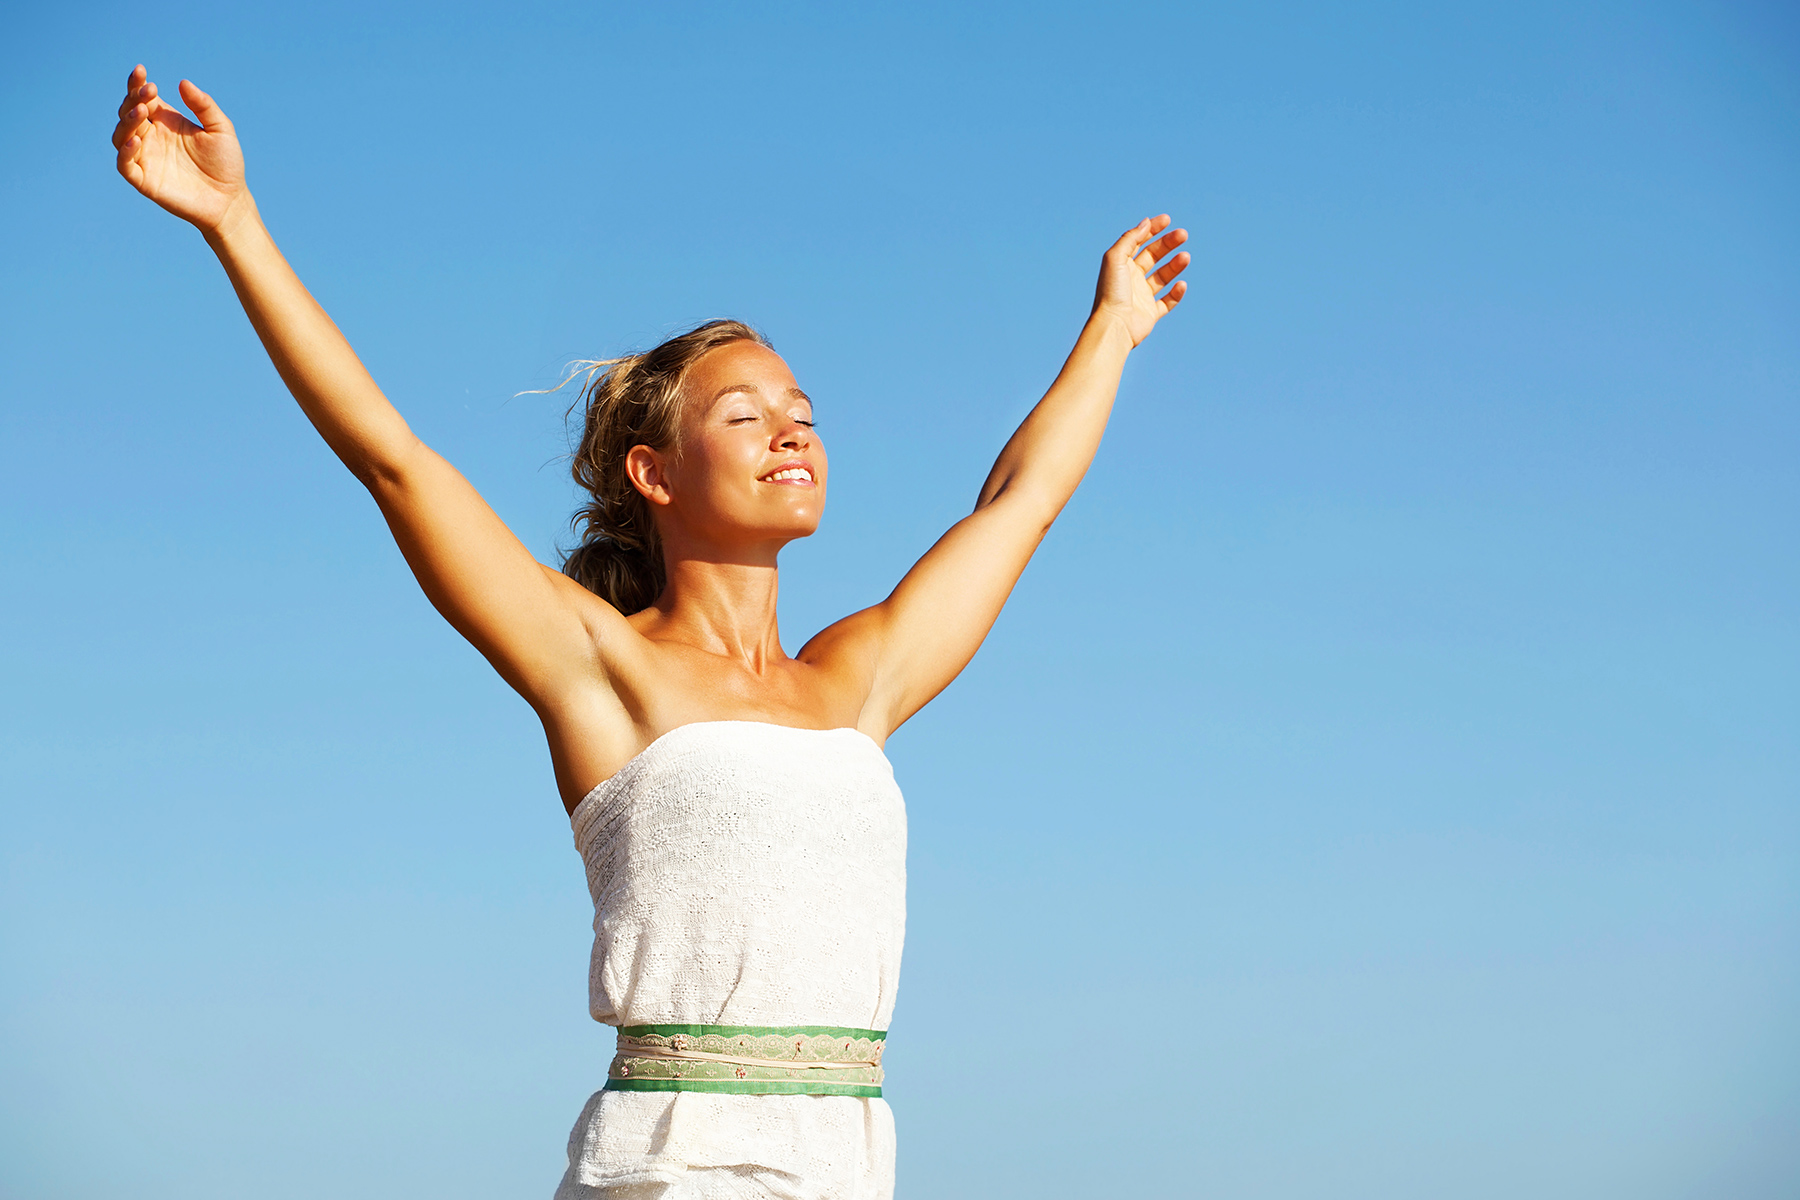 Upbeat Outlook Could Shield Your Brain